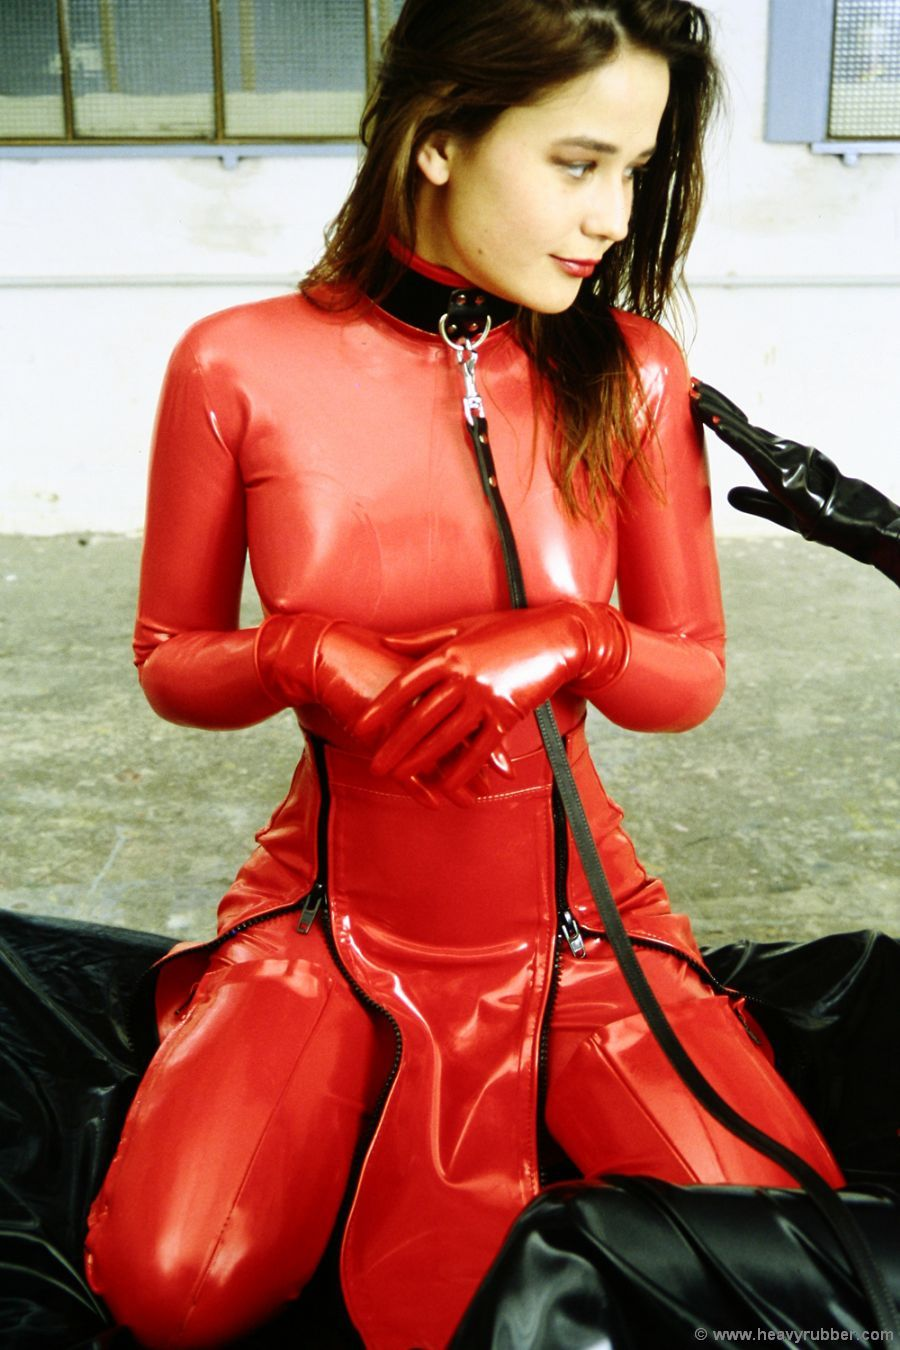 Bdsm nude girl images 80